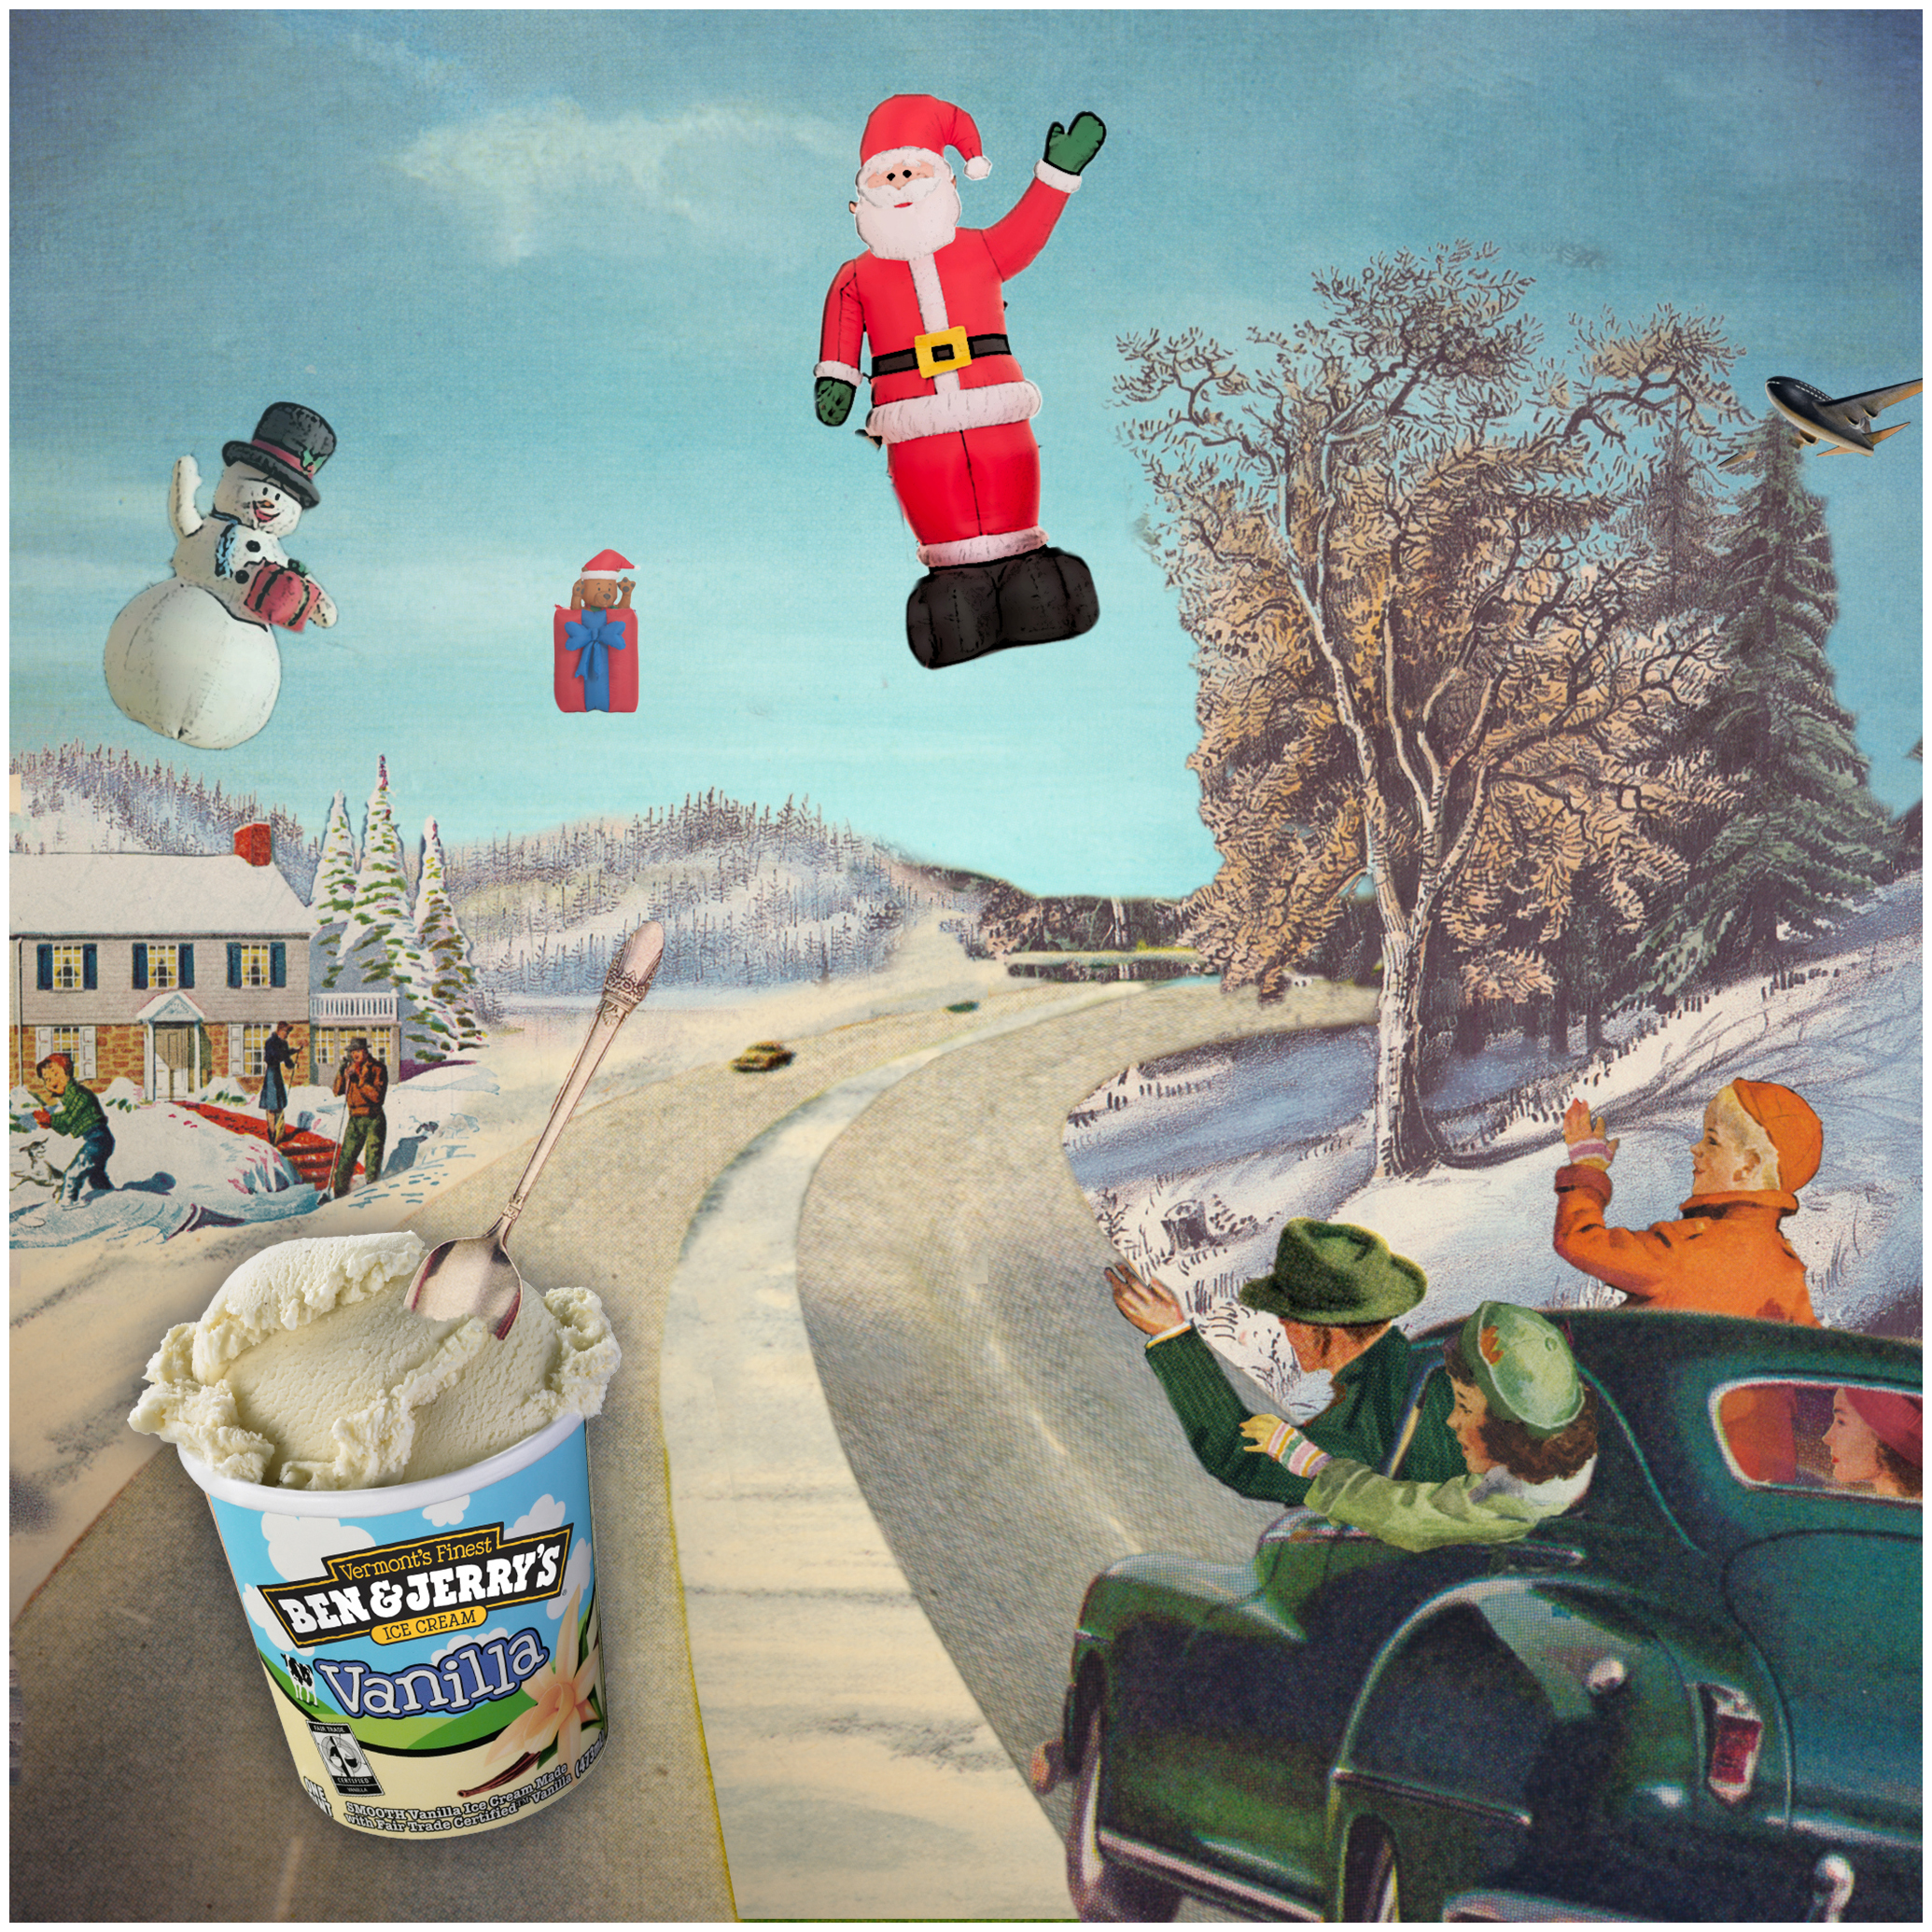 F.038.Ben&Jerry'sLawnOrnaments